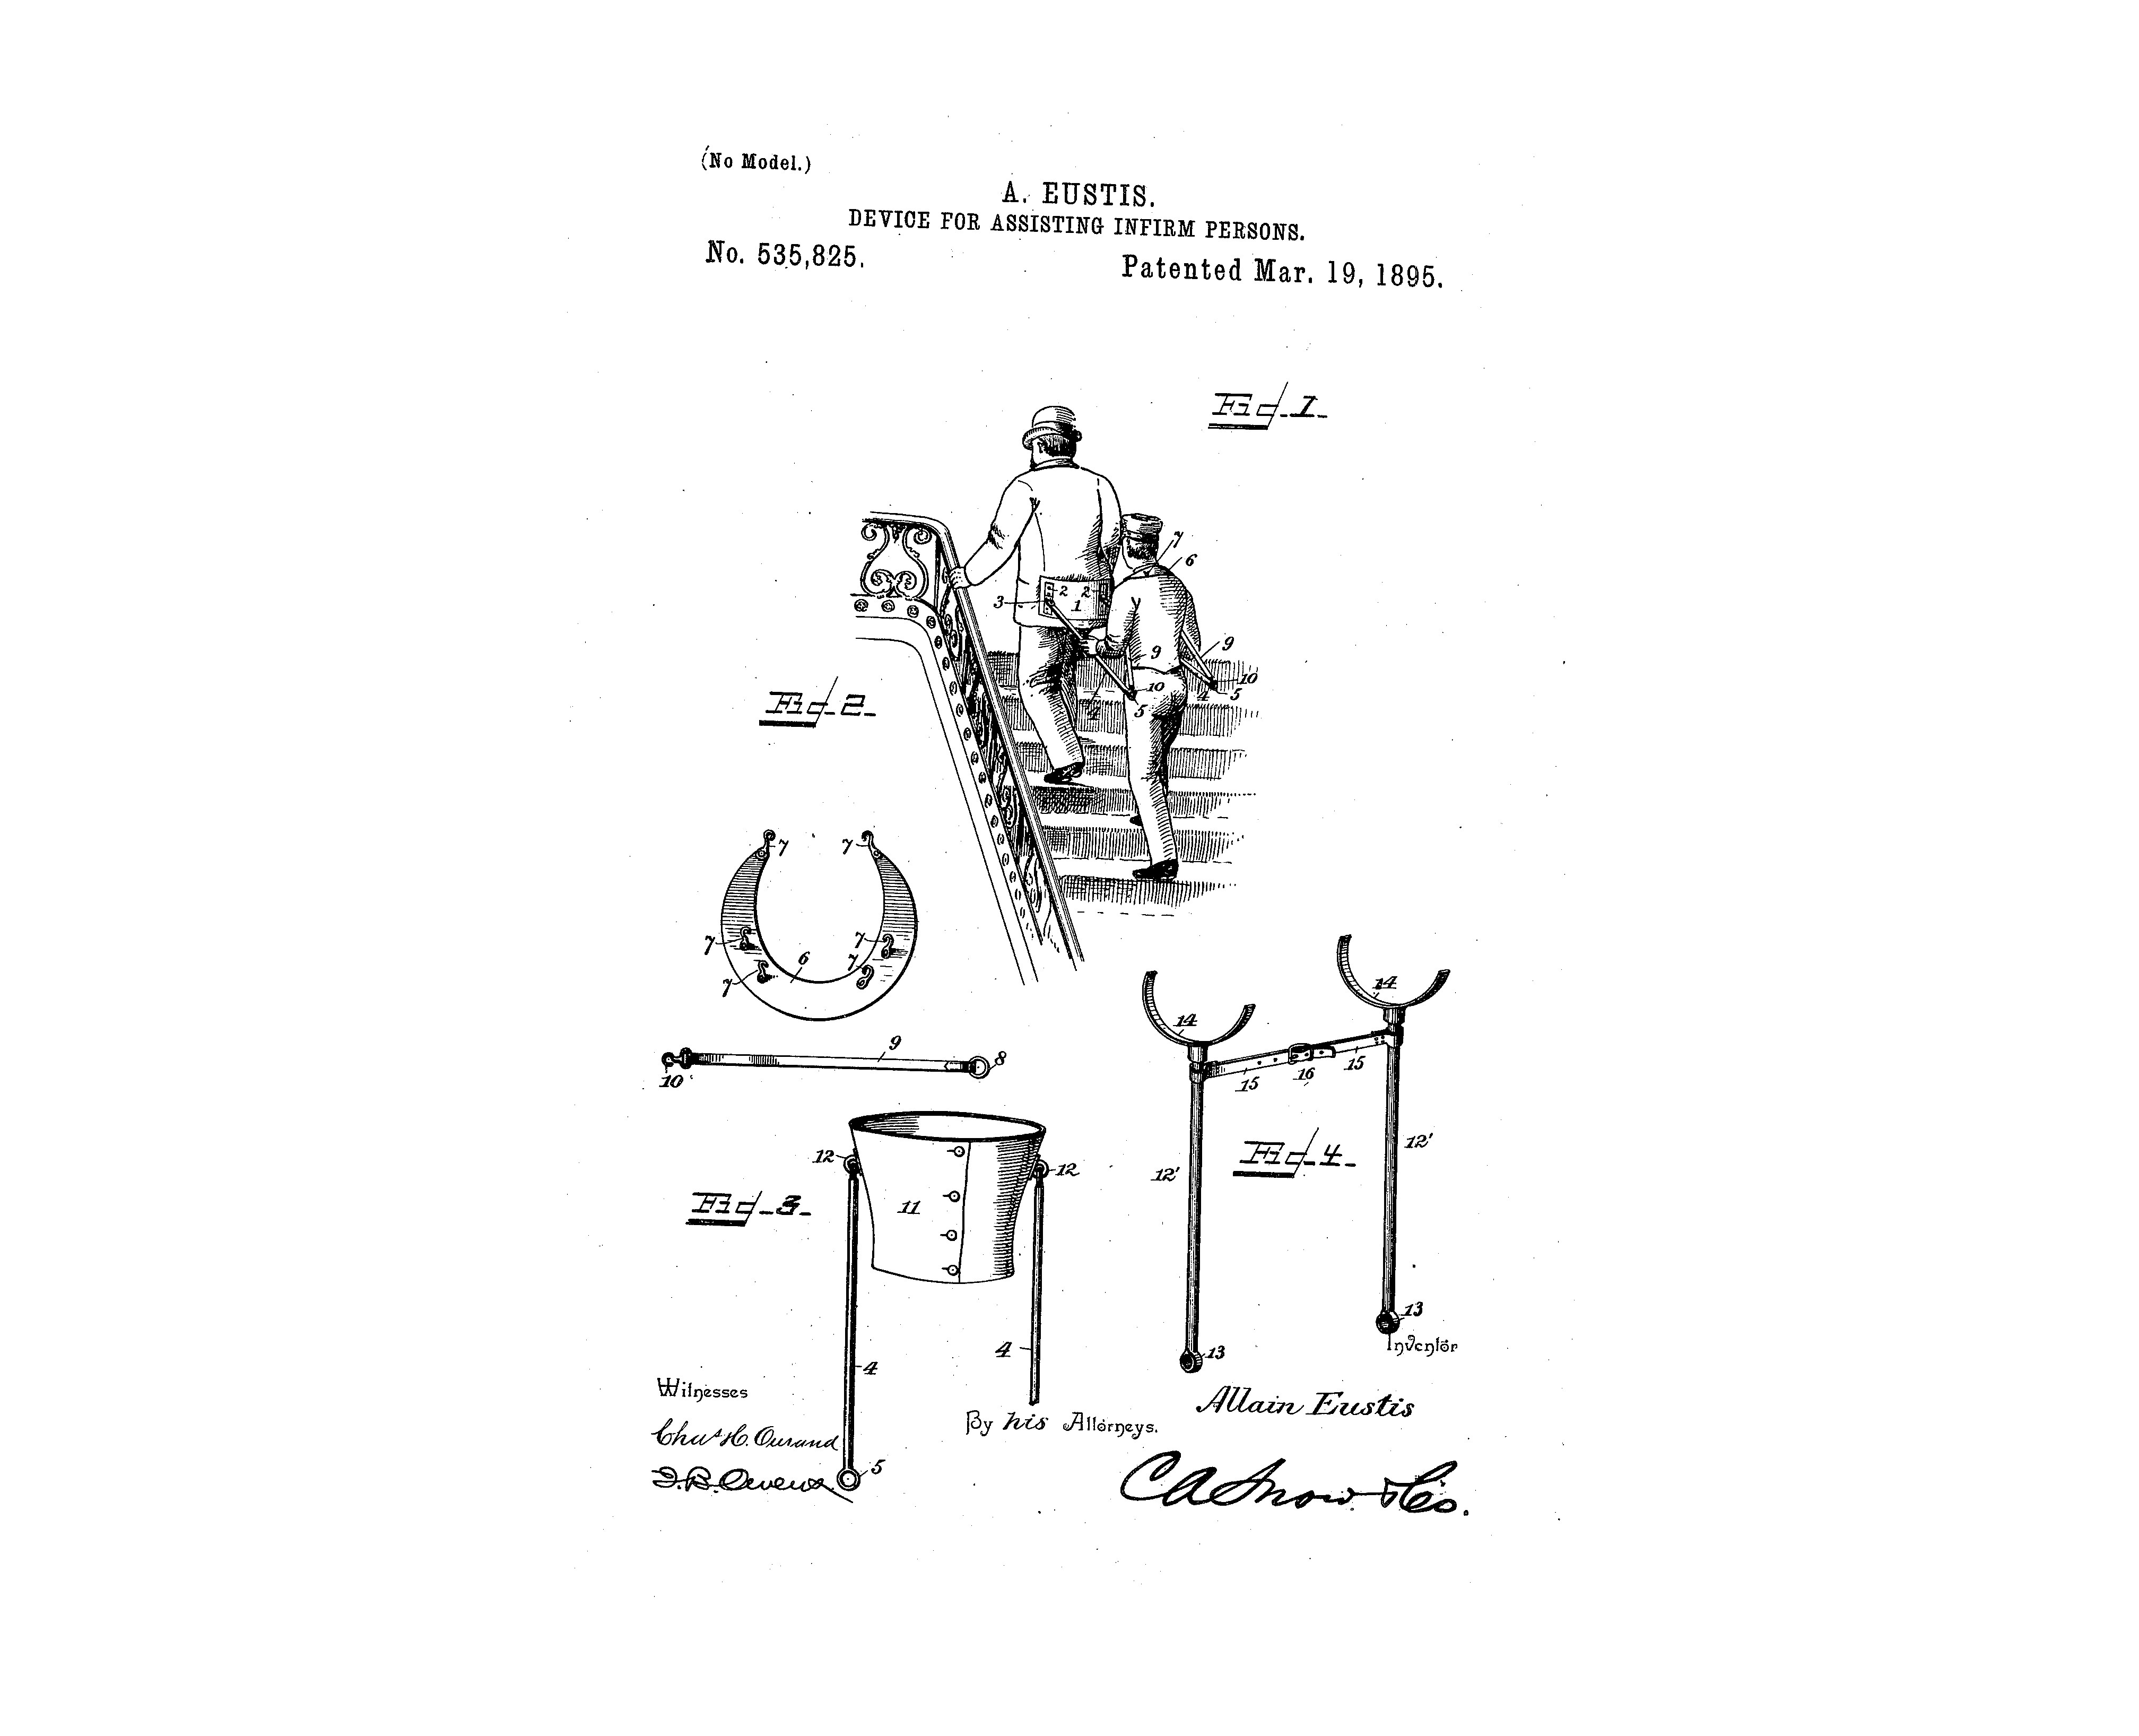 Device for assisting infirm persons, patent no. 535, 825, 1895.